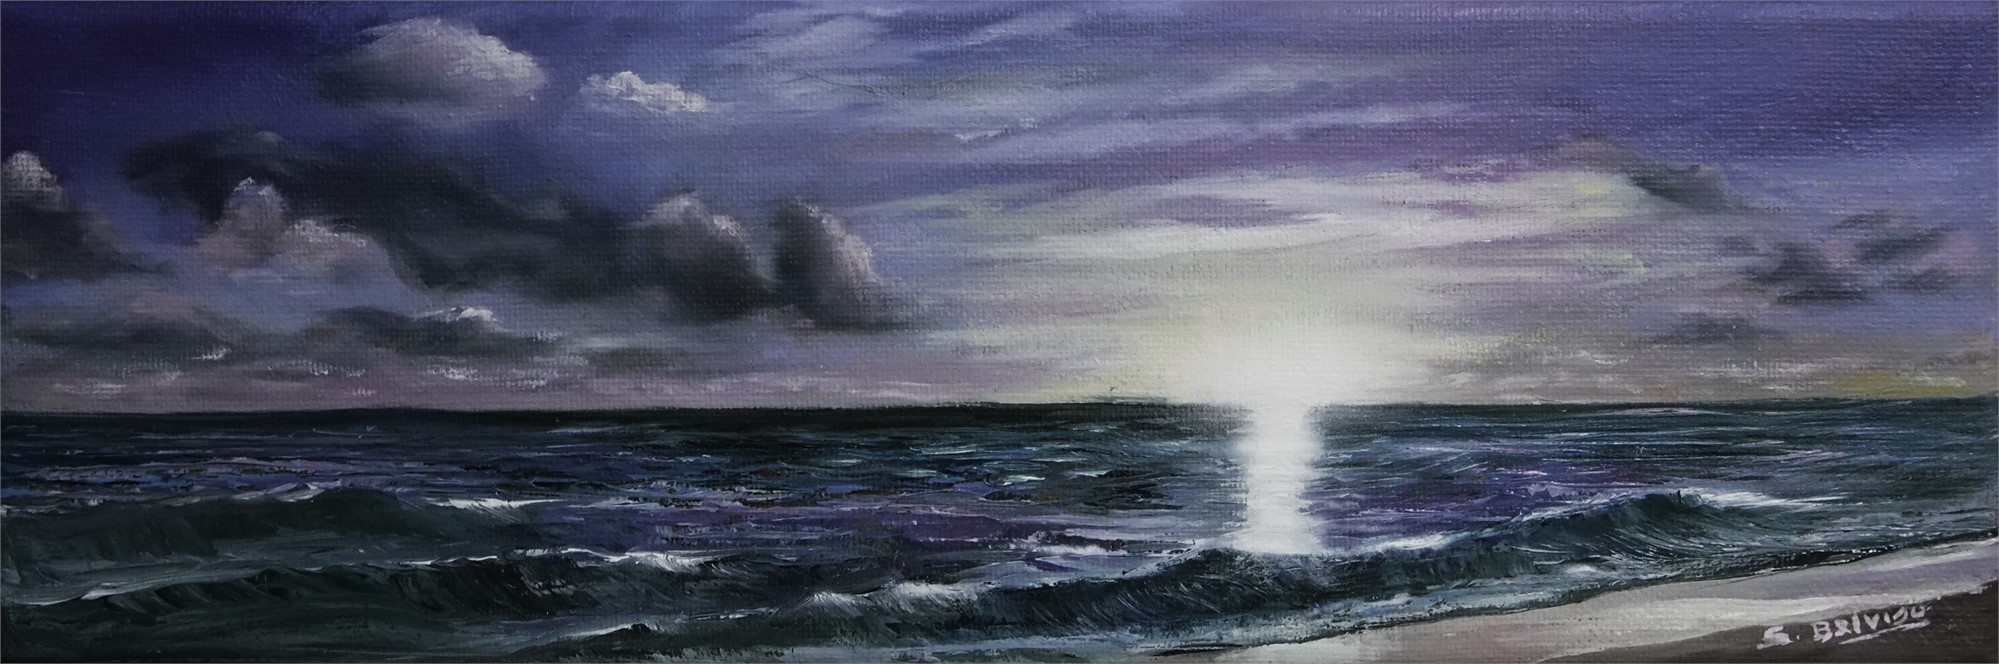 Purple Ocean by Silvia Belviso